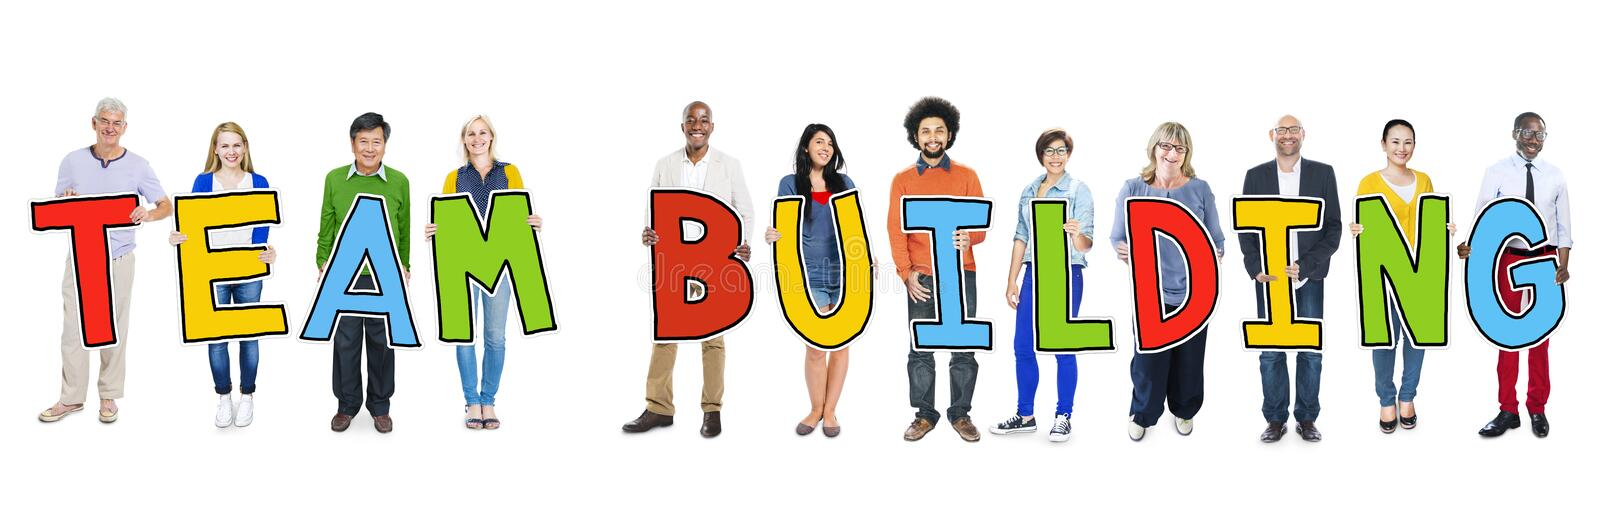 Diverse Group of People Holding Text Team Building.  stock images